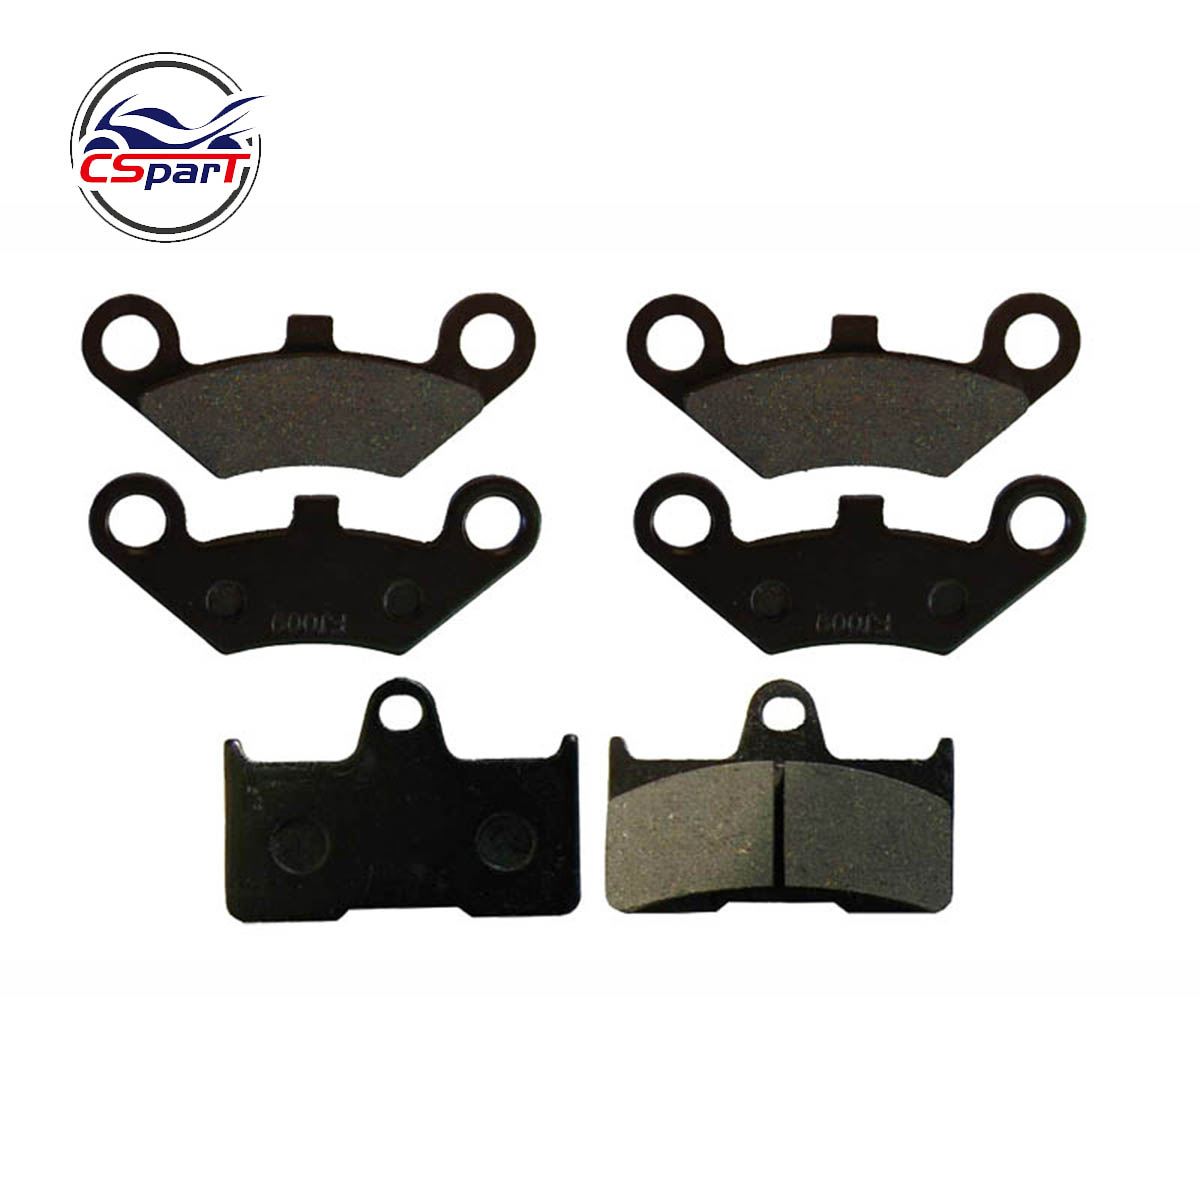 3 SET Front Rear Brake Pad For CFmoto CF500 CFORCE 450 550 600 800 X5 X6 X8 400CC 500CC 600CC 800CC ATV 9010-080810 9010-080510